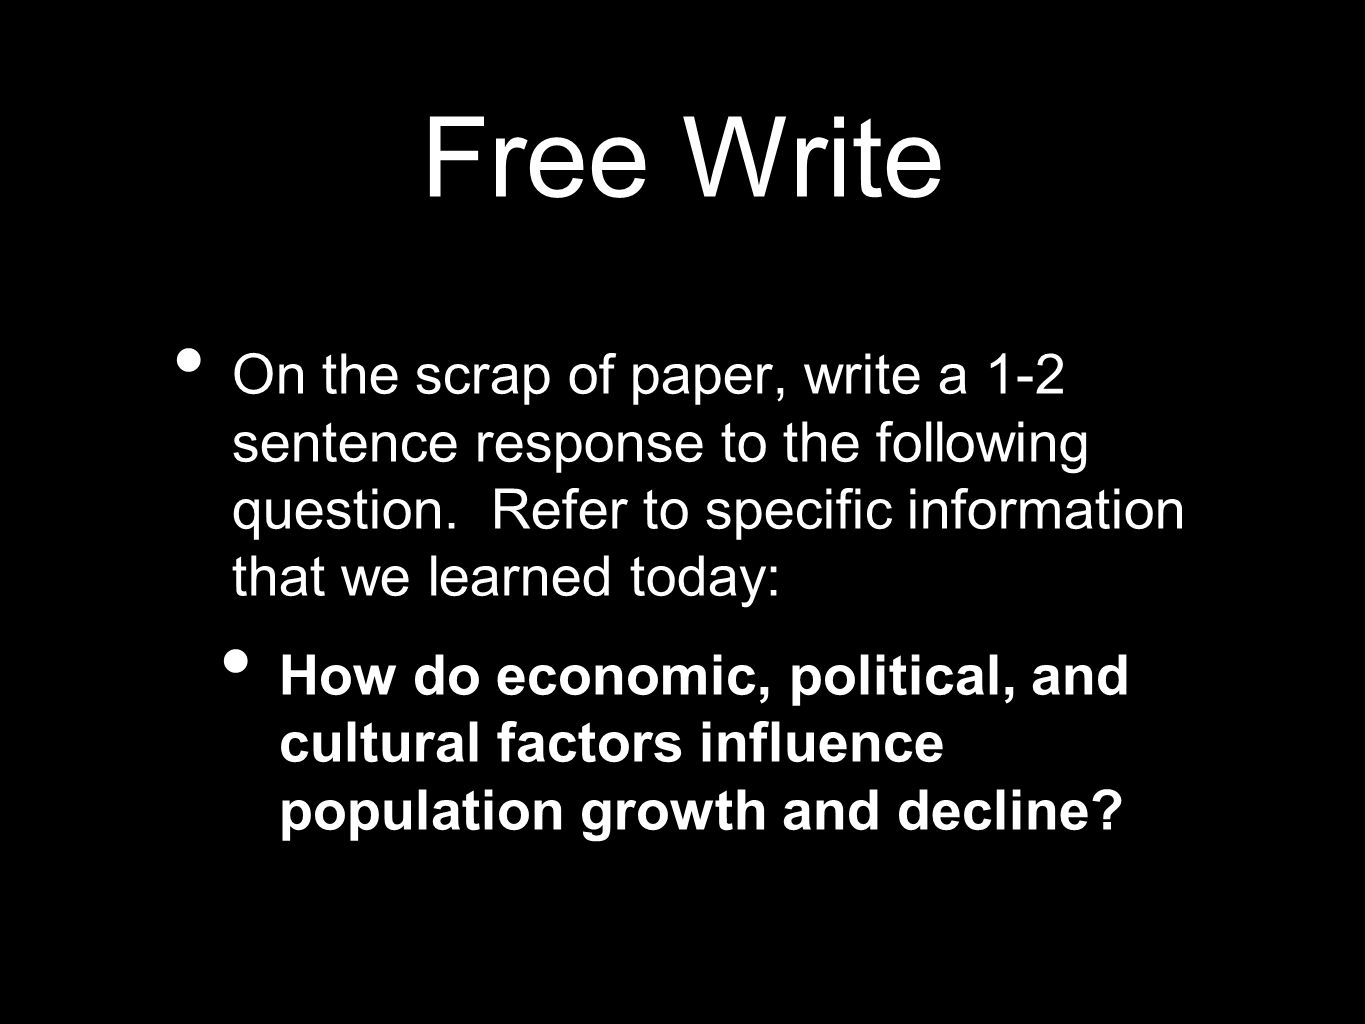 Free WriteOn the scrap of paper, write a 1-2 sentence response to the following question. Refer to specific information that we learned today: